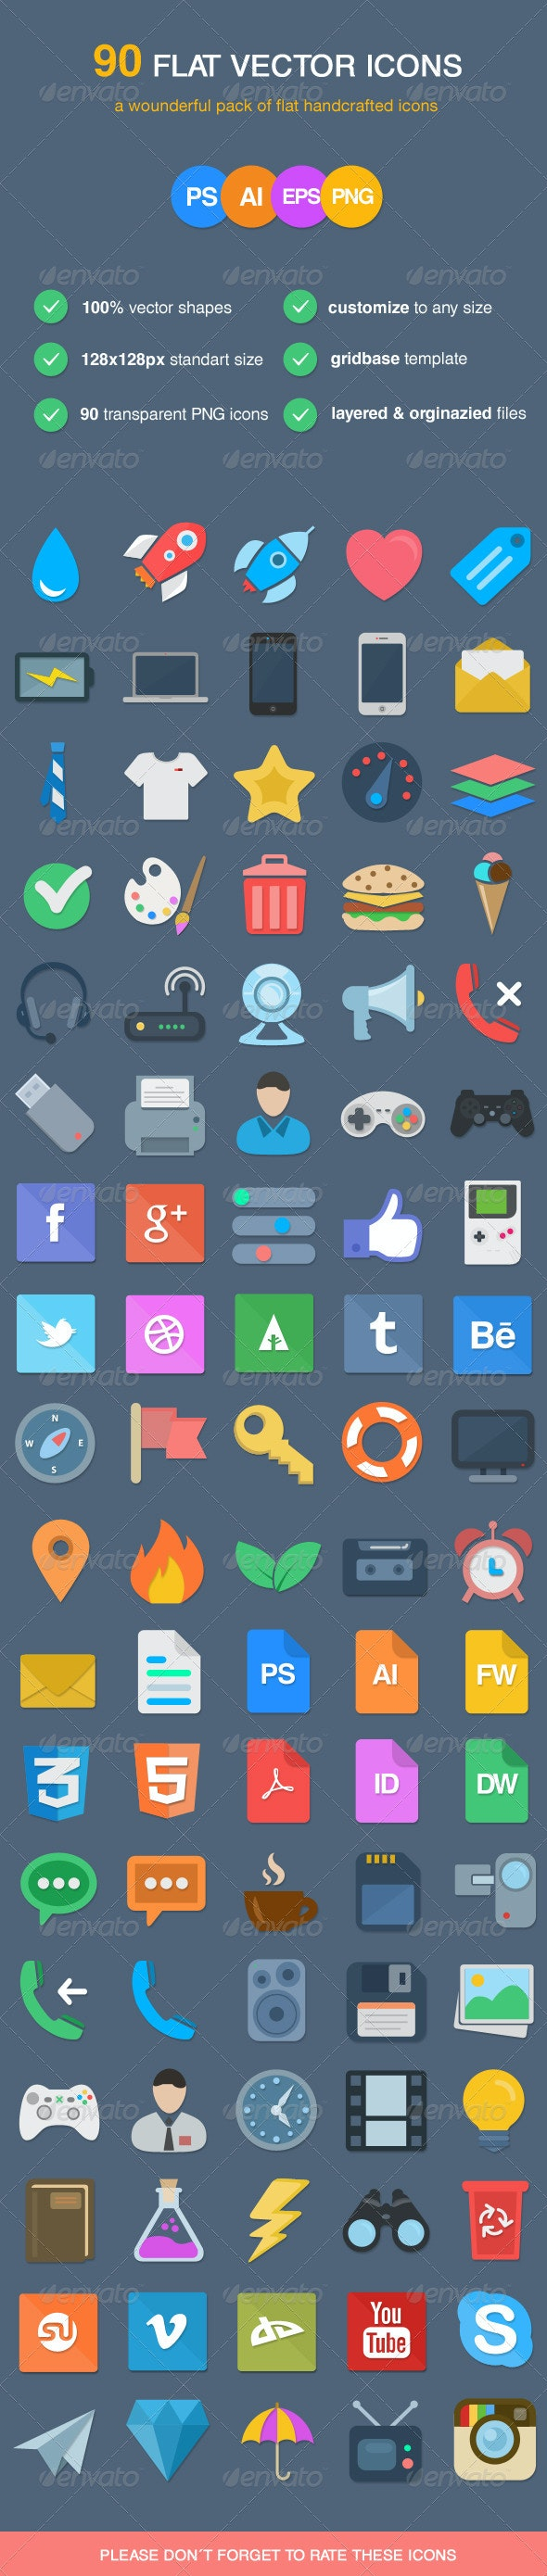 90 Flat Vector Icons - Web Icons